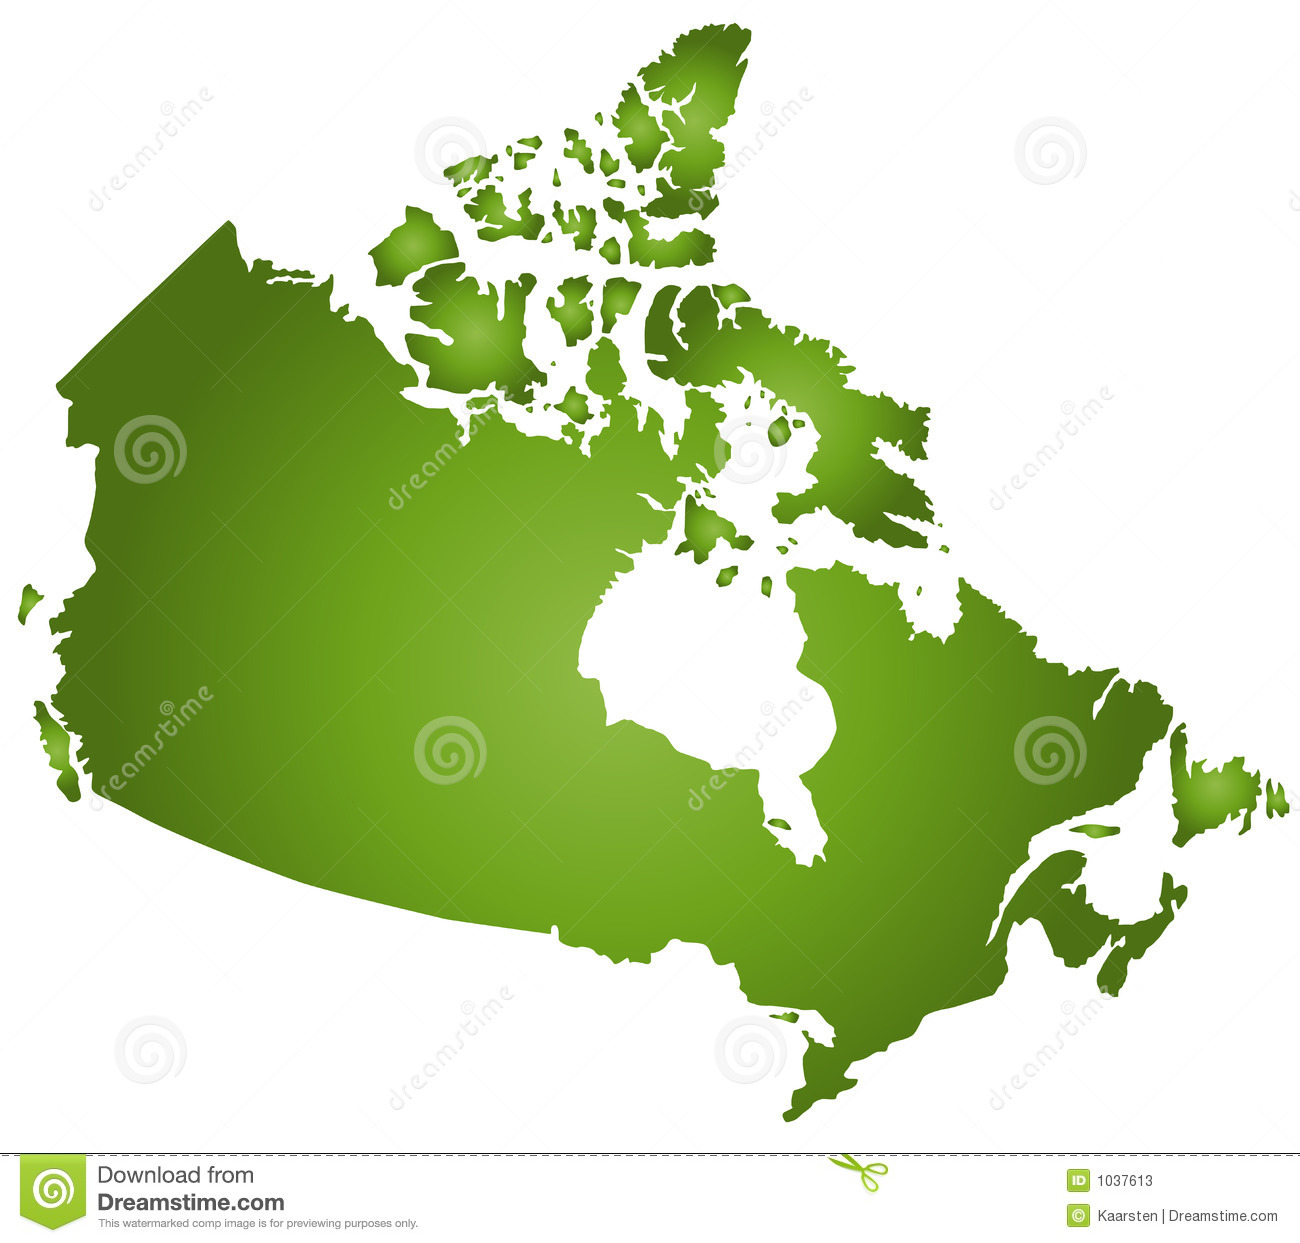 Simple Map Of Canada.Map Canada Stock Vector Illustration Of Orient Position 1037613